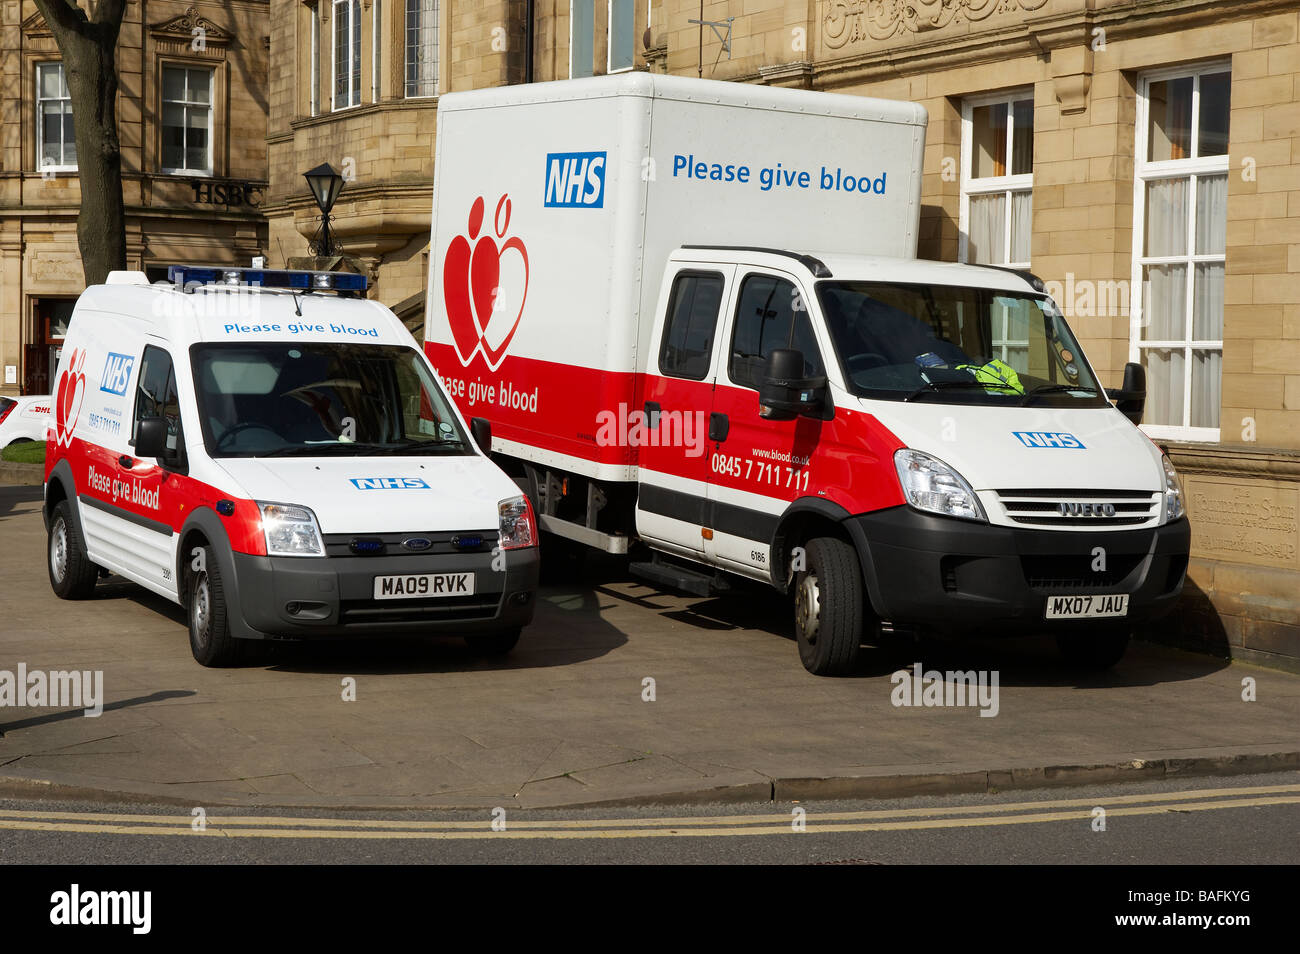 NATIONAL HEALTH SERVICE NHS BLOOD DONOR VEHICLE Stock Photo